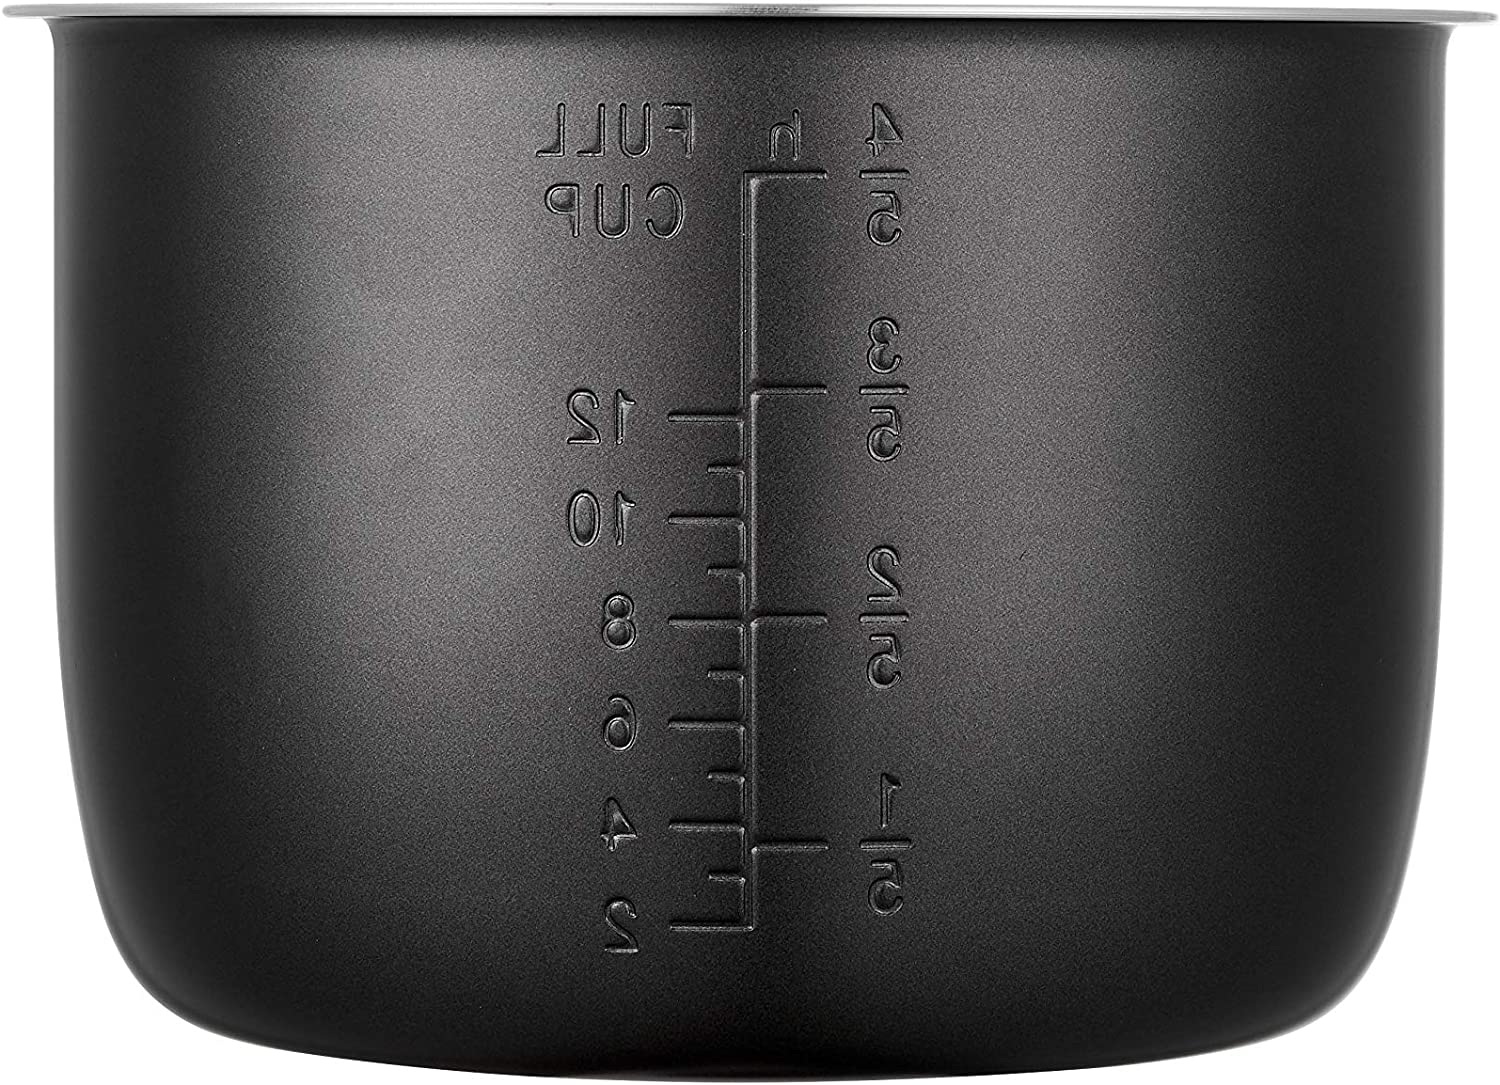 """GJS Gourmet Non-Stick Inner Pot Compatible with Cuisinart Pressure Cooker CPC-600, CPC-600N1, CPC-900, and EPC-1200 (6 Quart, Nonstick)"". This pot is not created or sold by Cuisinart."